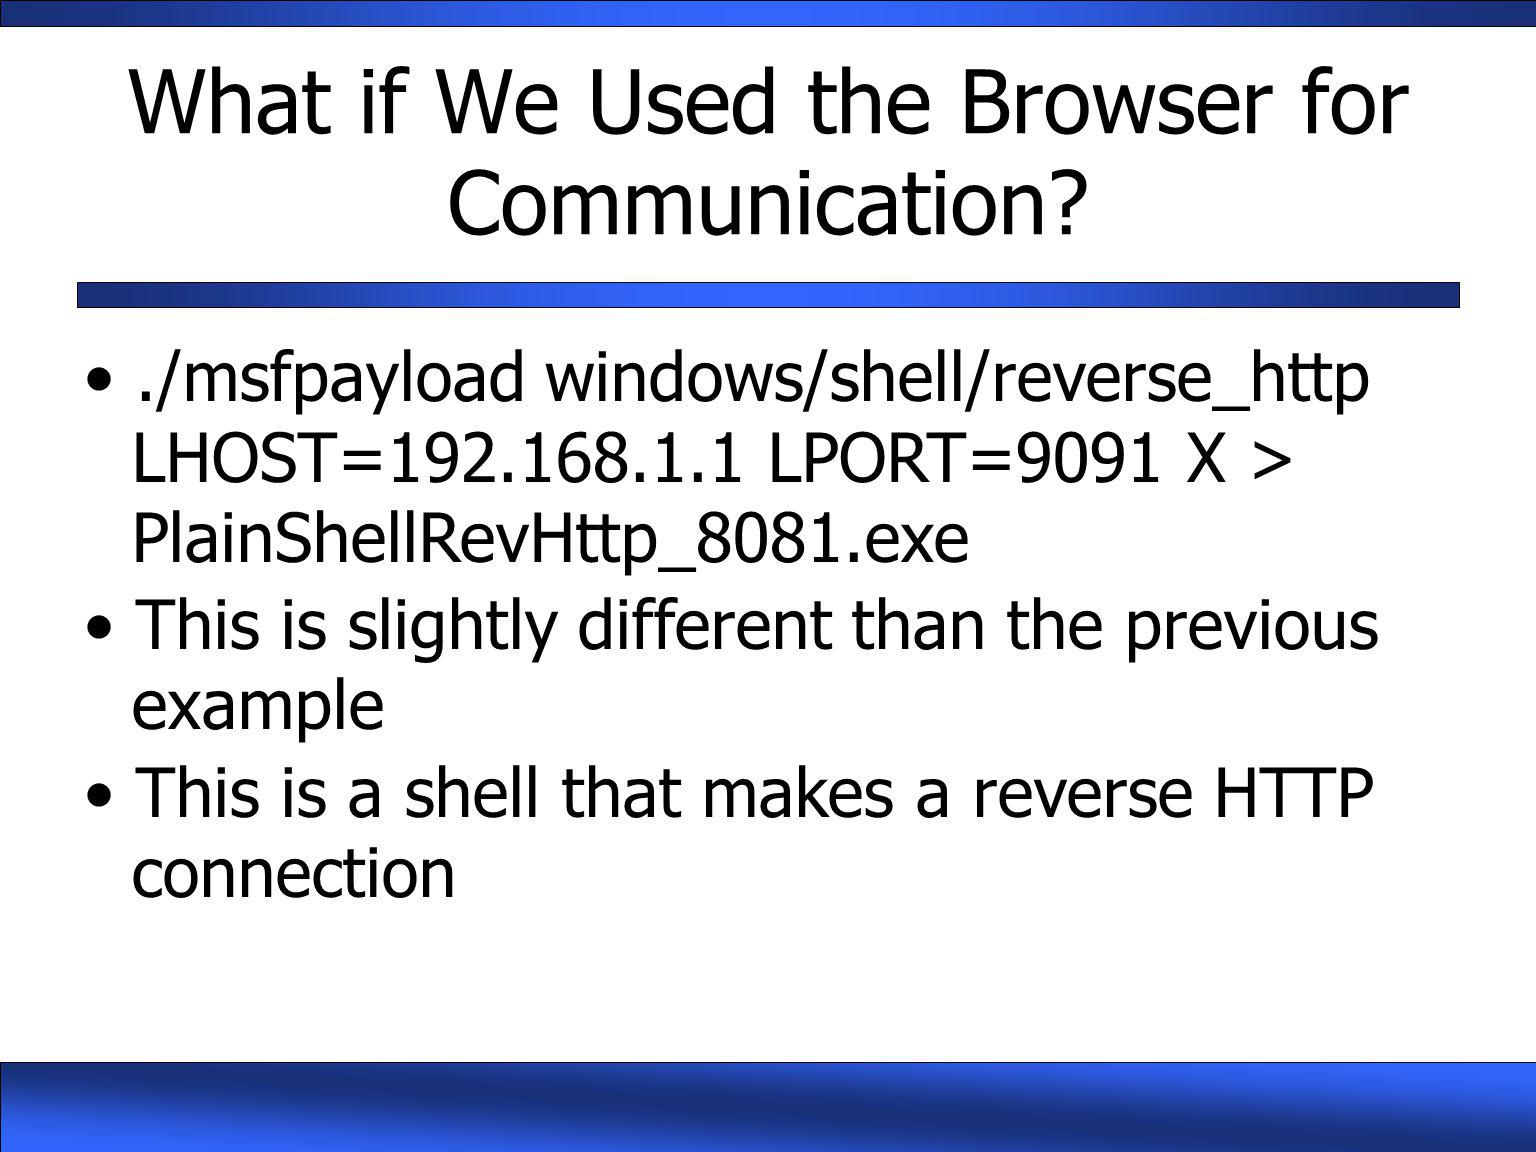 What if We Used the Browser for Communication